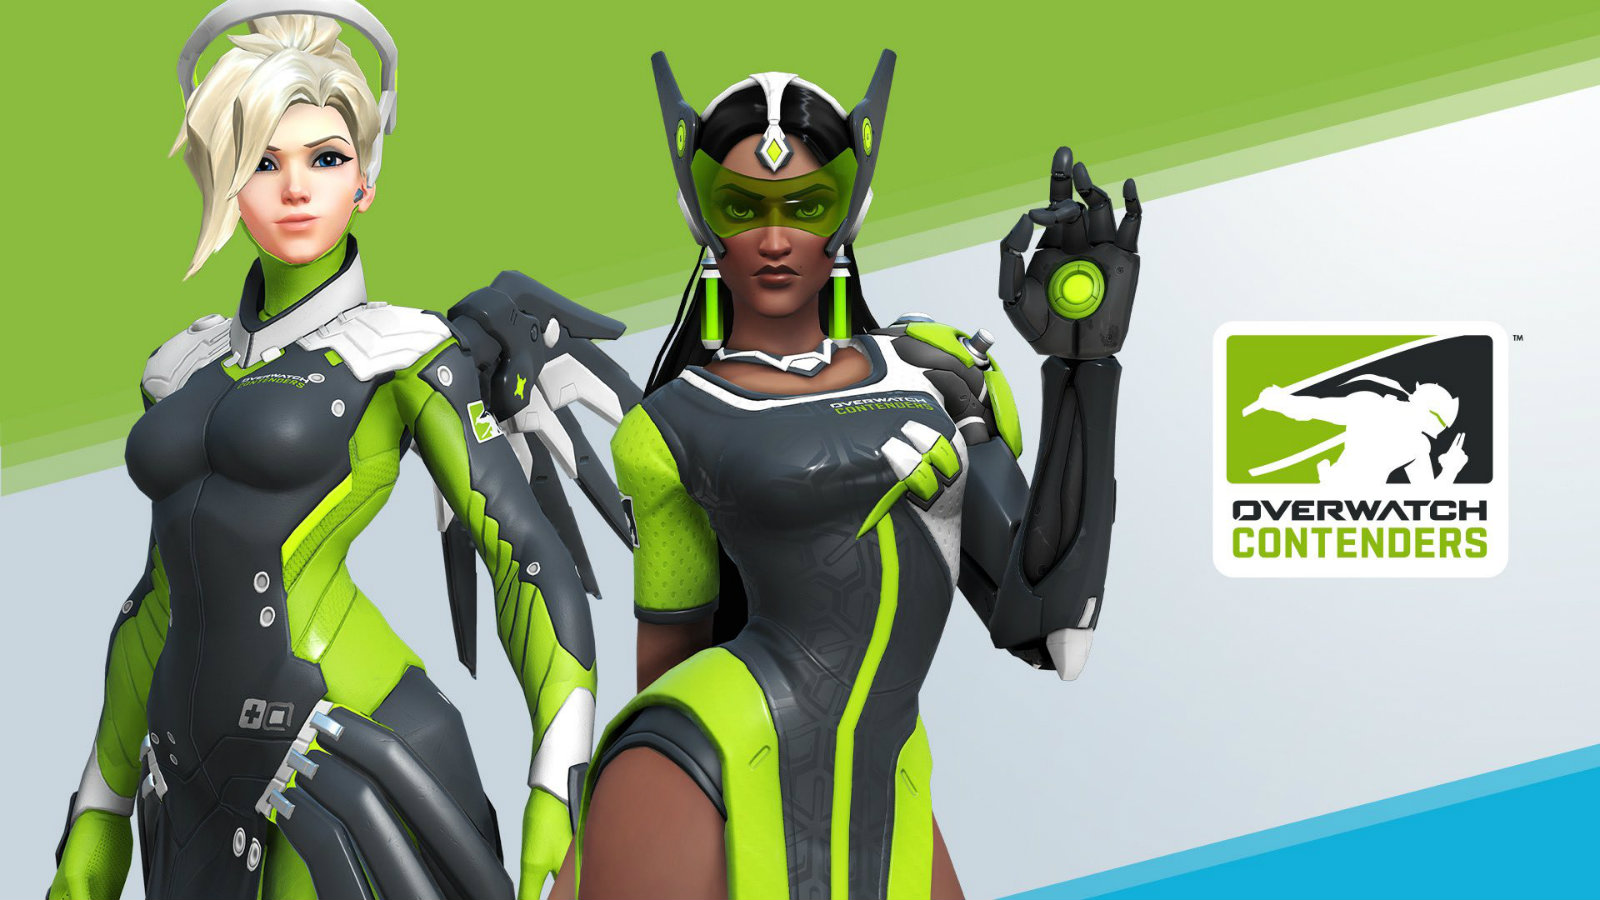 Mercy and Symmetra Overwatch Contenders skins